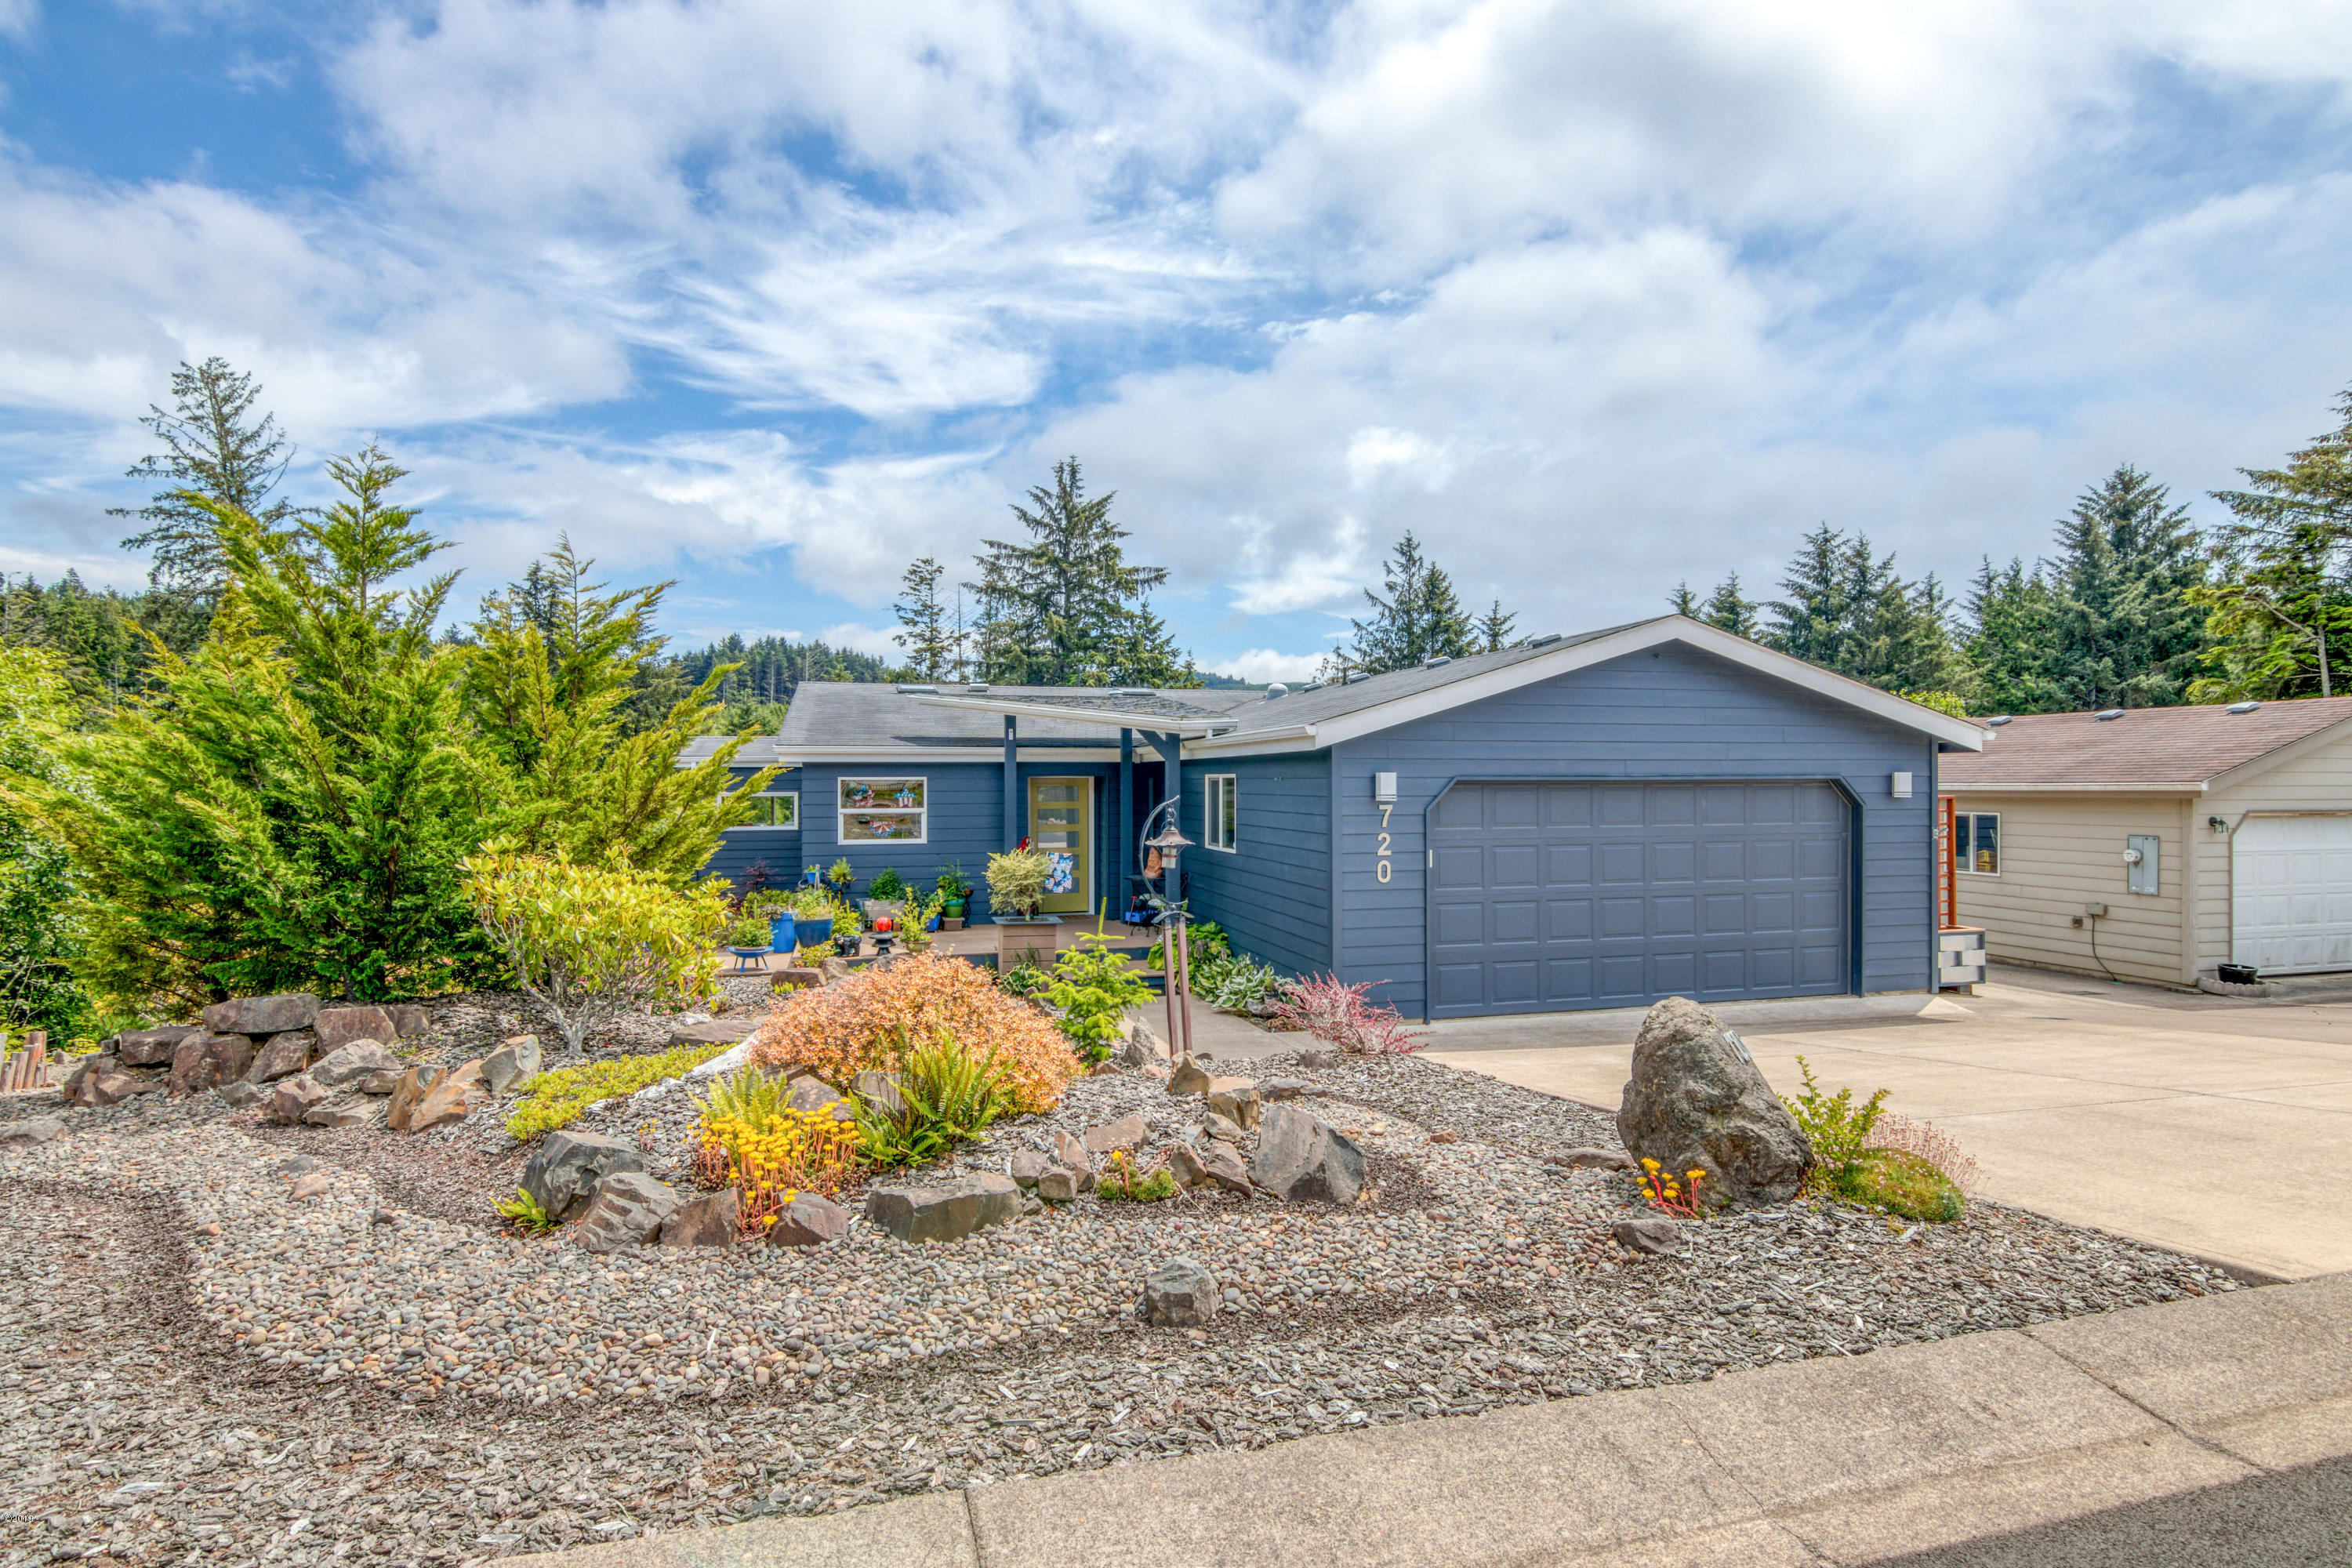 720 SE Winchell Dr, Depoe Bay, OR 97341 - Spectacular location